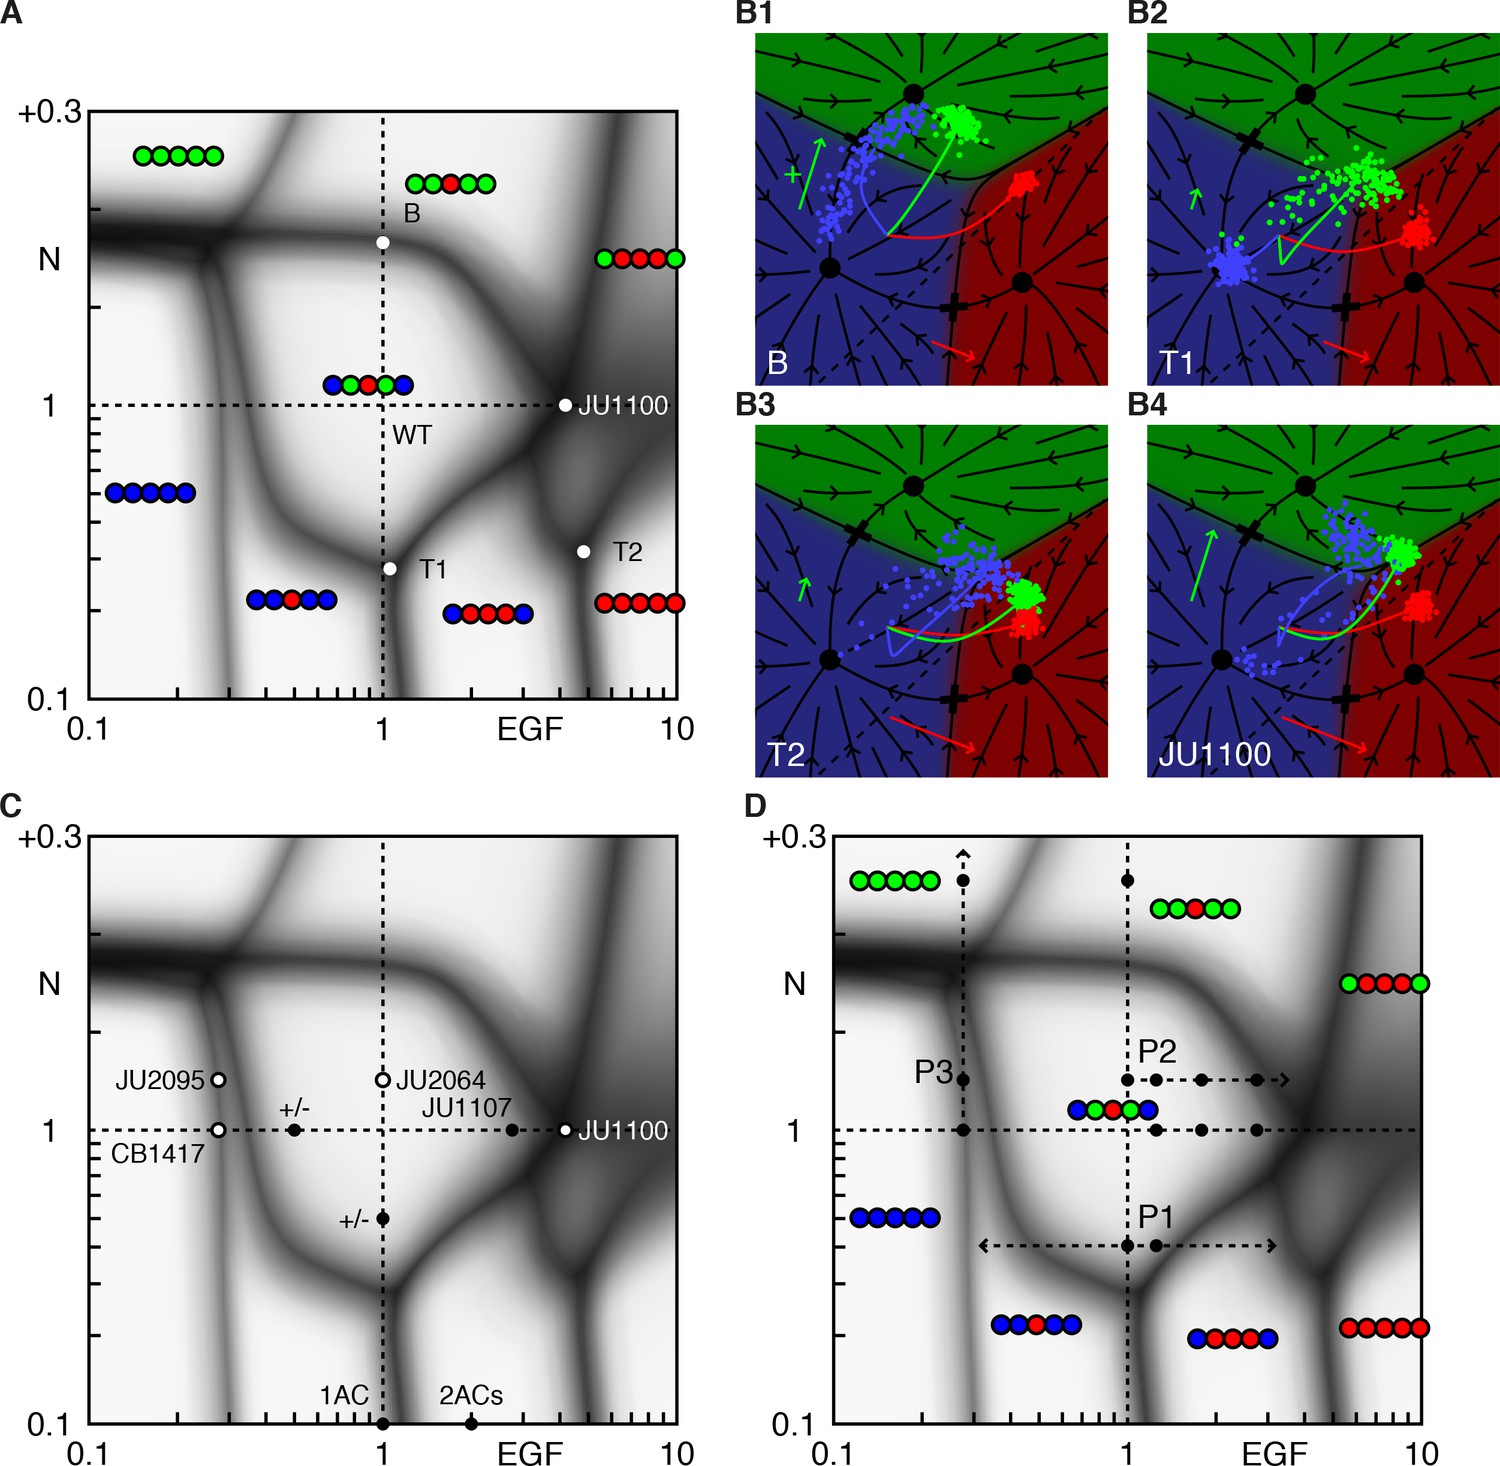 Gene Free Methodology For Cell Fate Dynamics During Development Elife State Diagrams Are A Powerful Mechanism Formalizing That Phase Diagram Of The Model